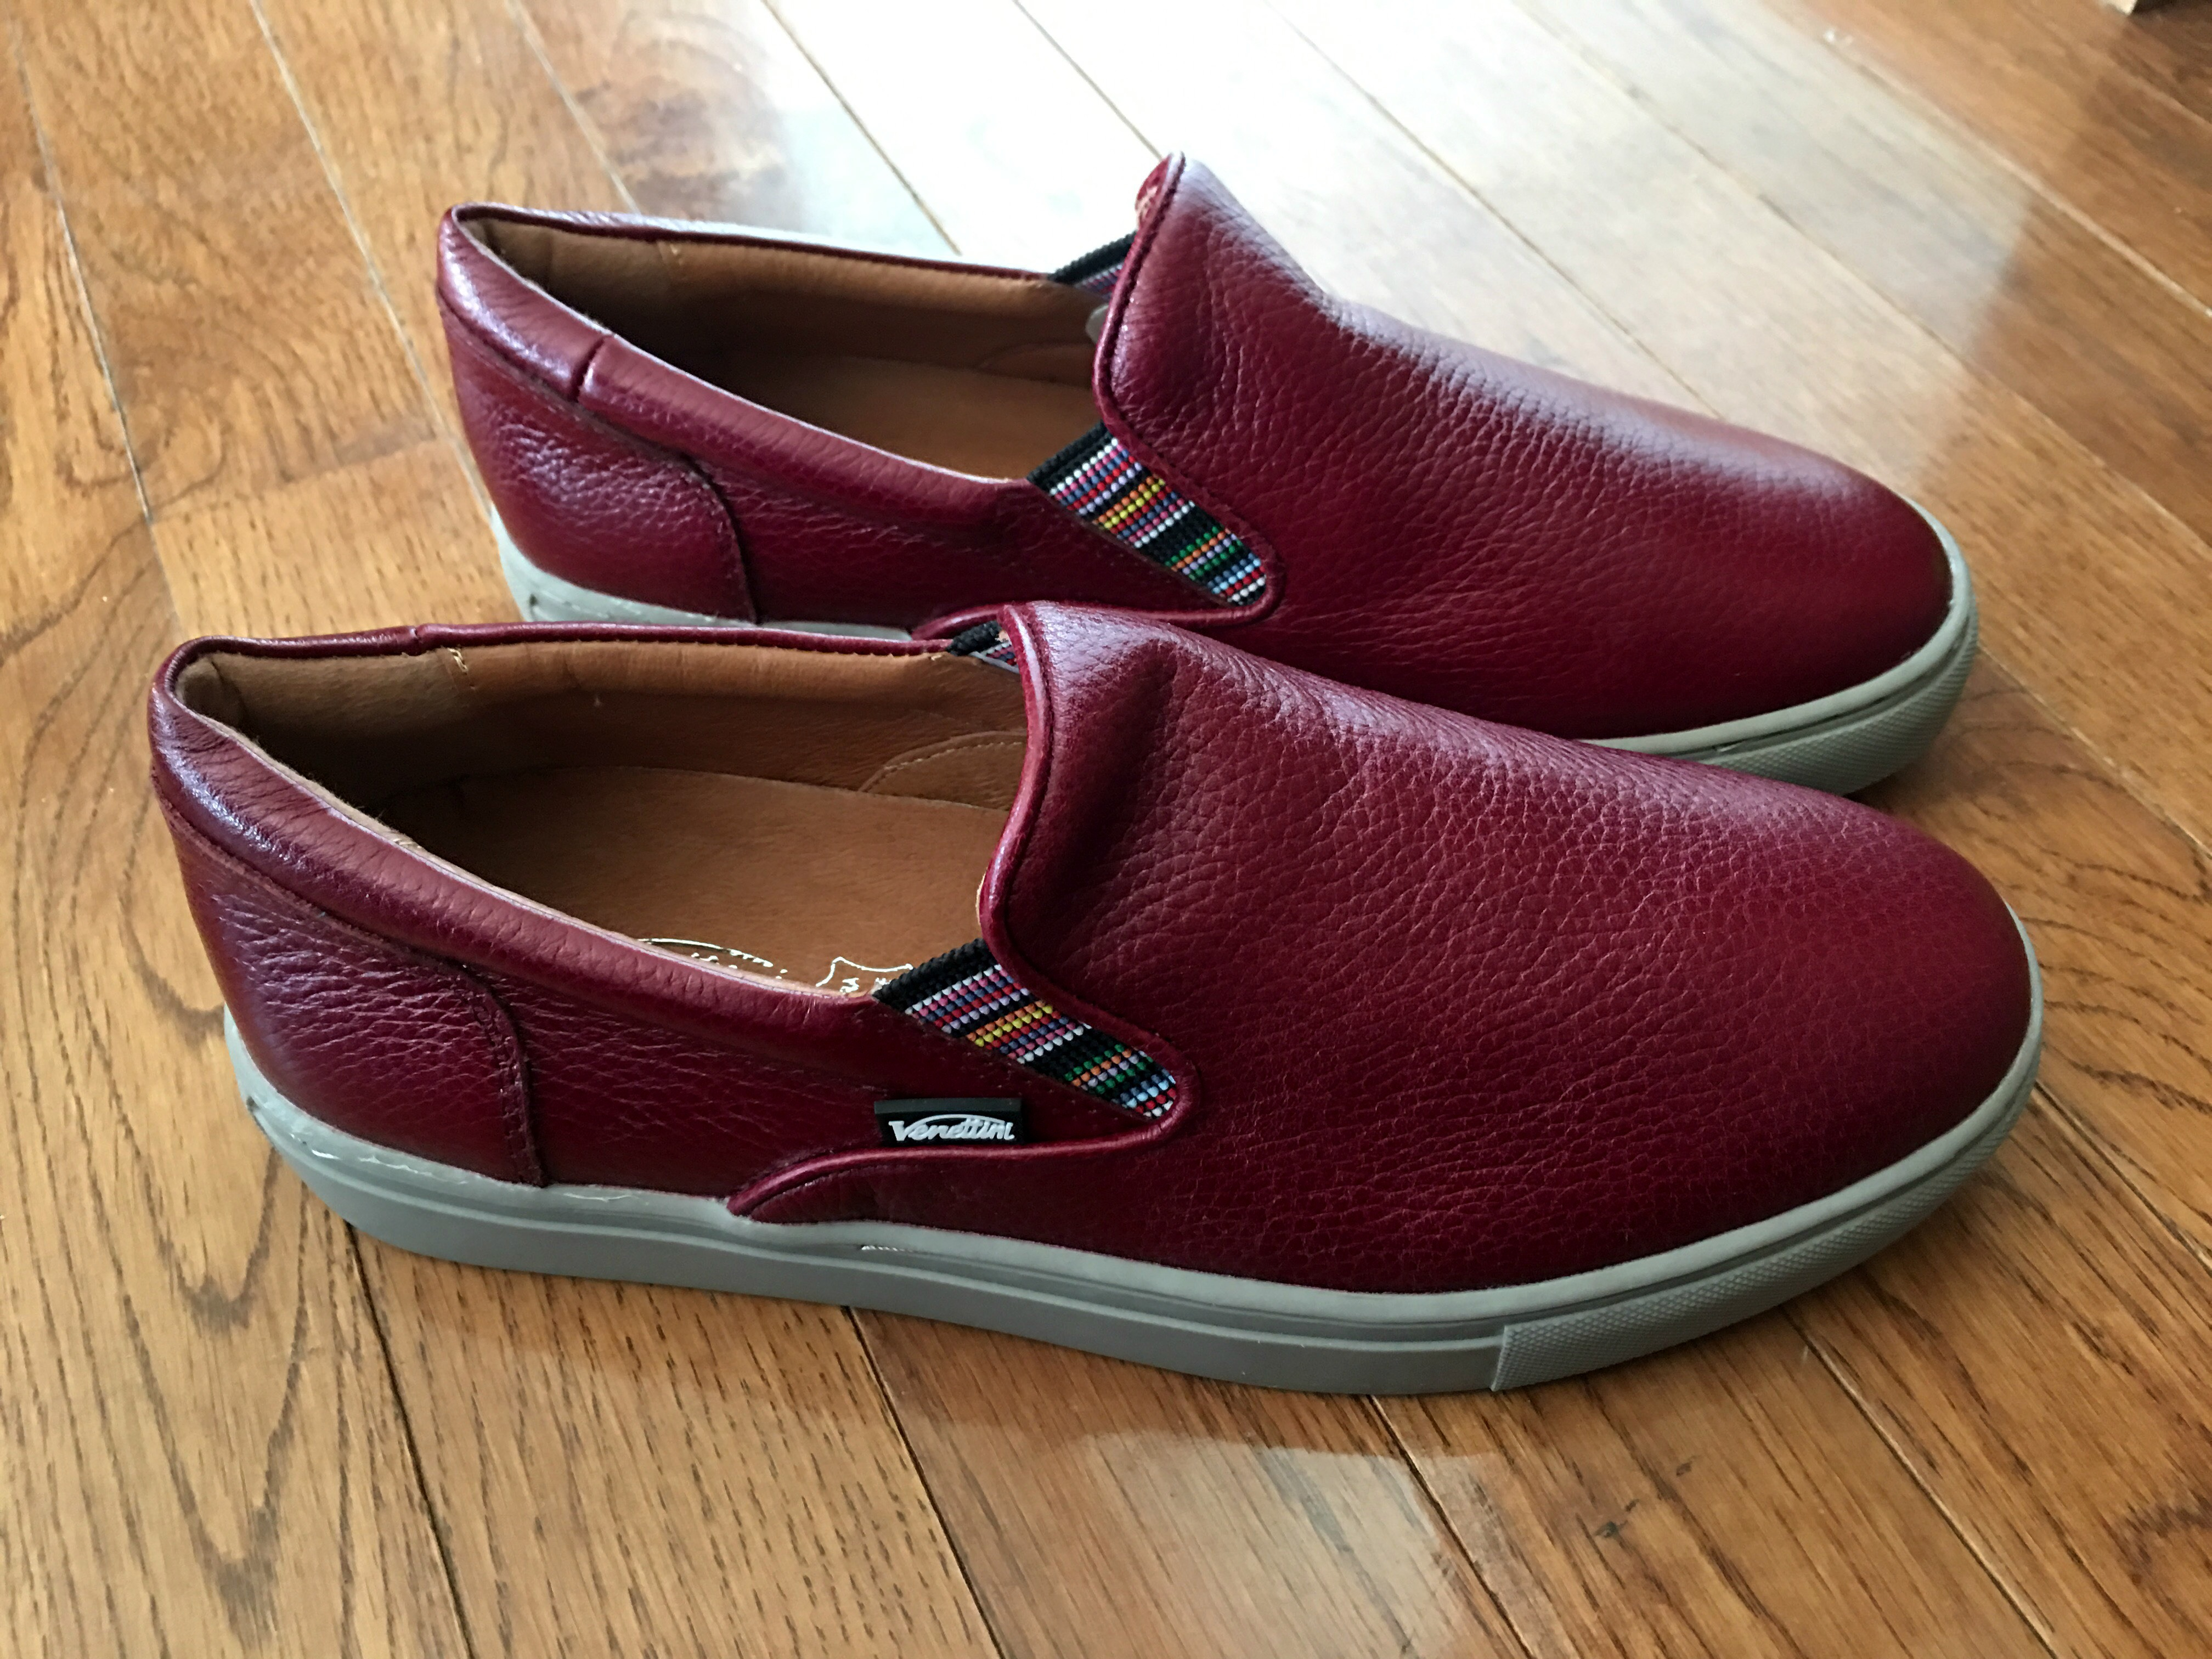 Wholesaler, Importer, and Exporter of High Quality Wholesale Shoes for Women, Men, and Children. Our footwear brand EasyUSA, Wave. includes canvas shoes, water shoes, sandals, House Slipper, Leather boots, Rain boots. and many more styles.